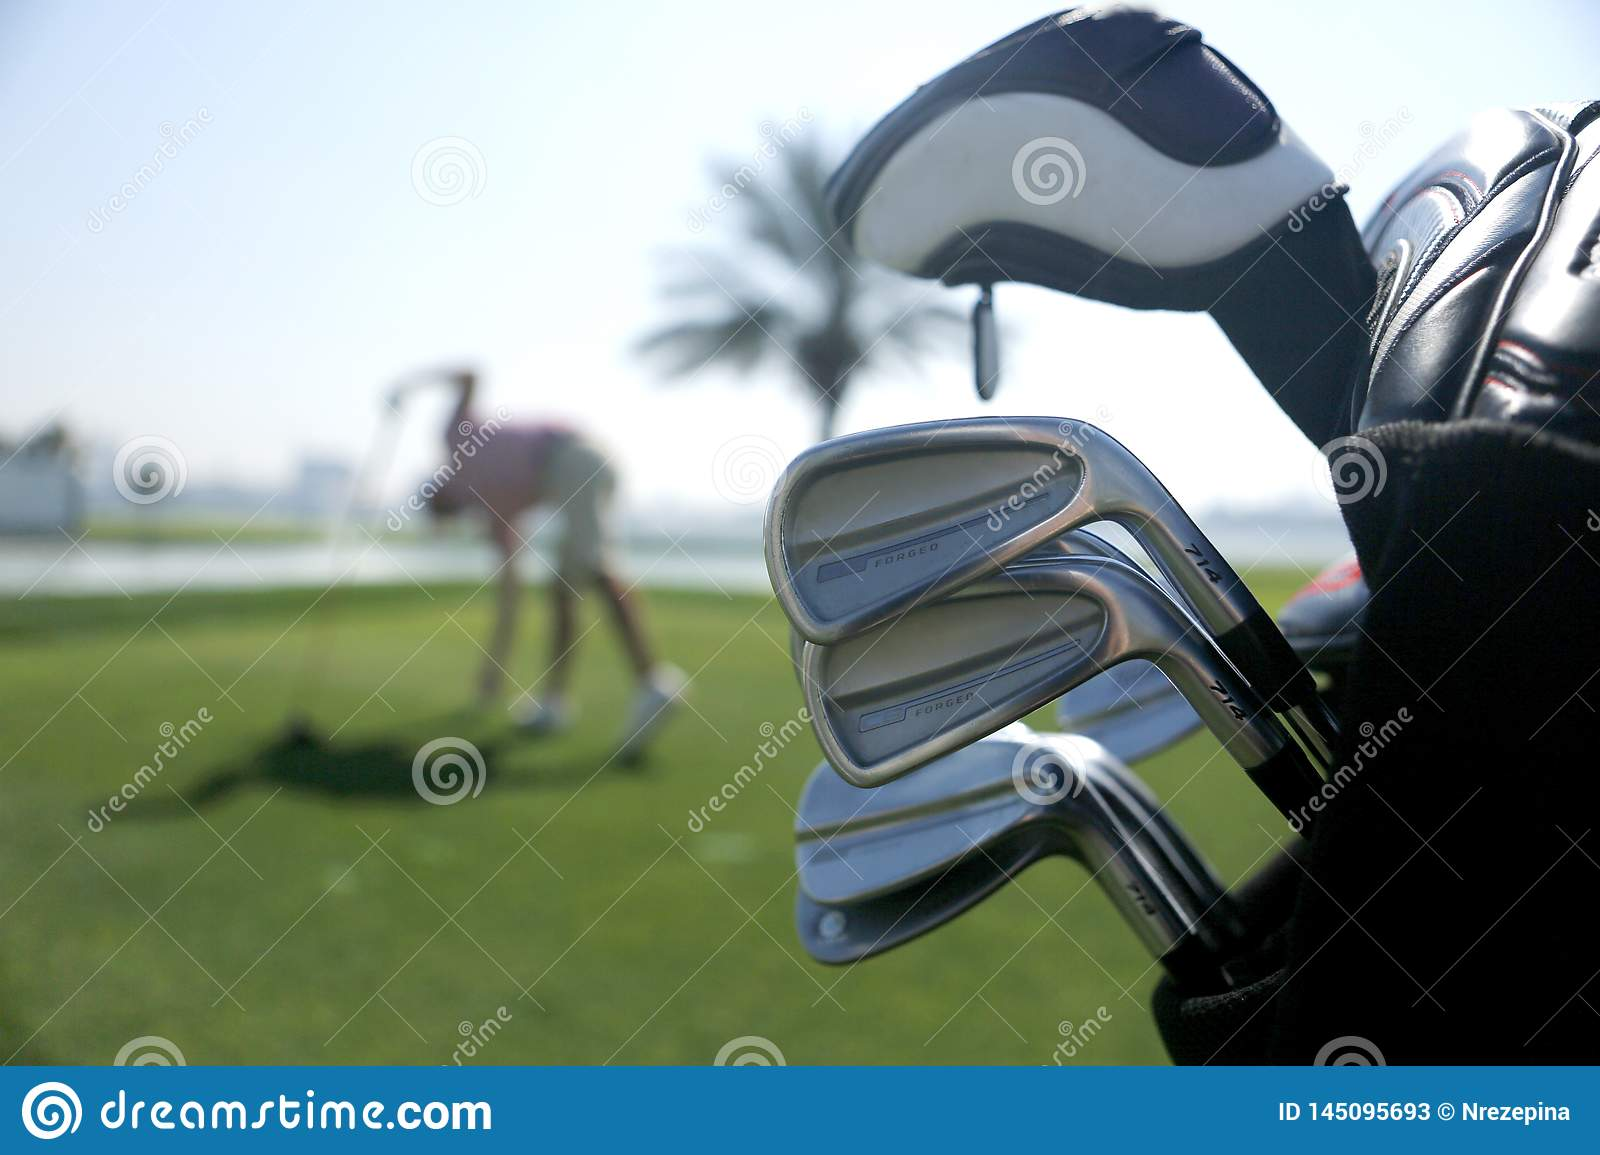 Golf bag with clubs on the plan and with the player before swing in the background